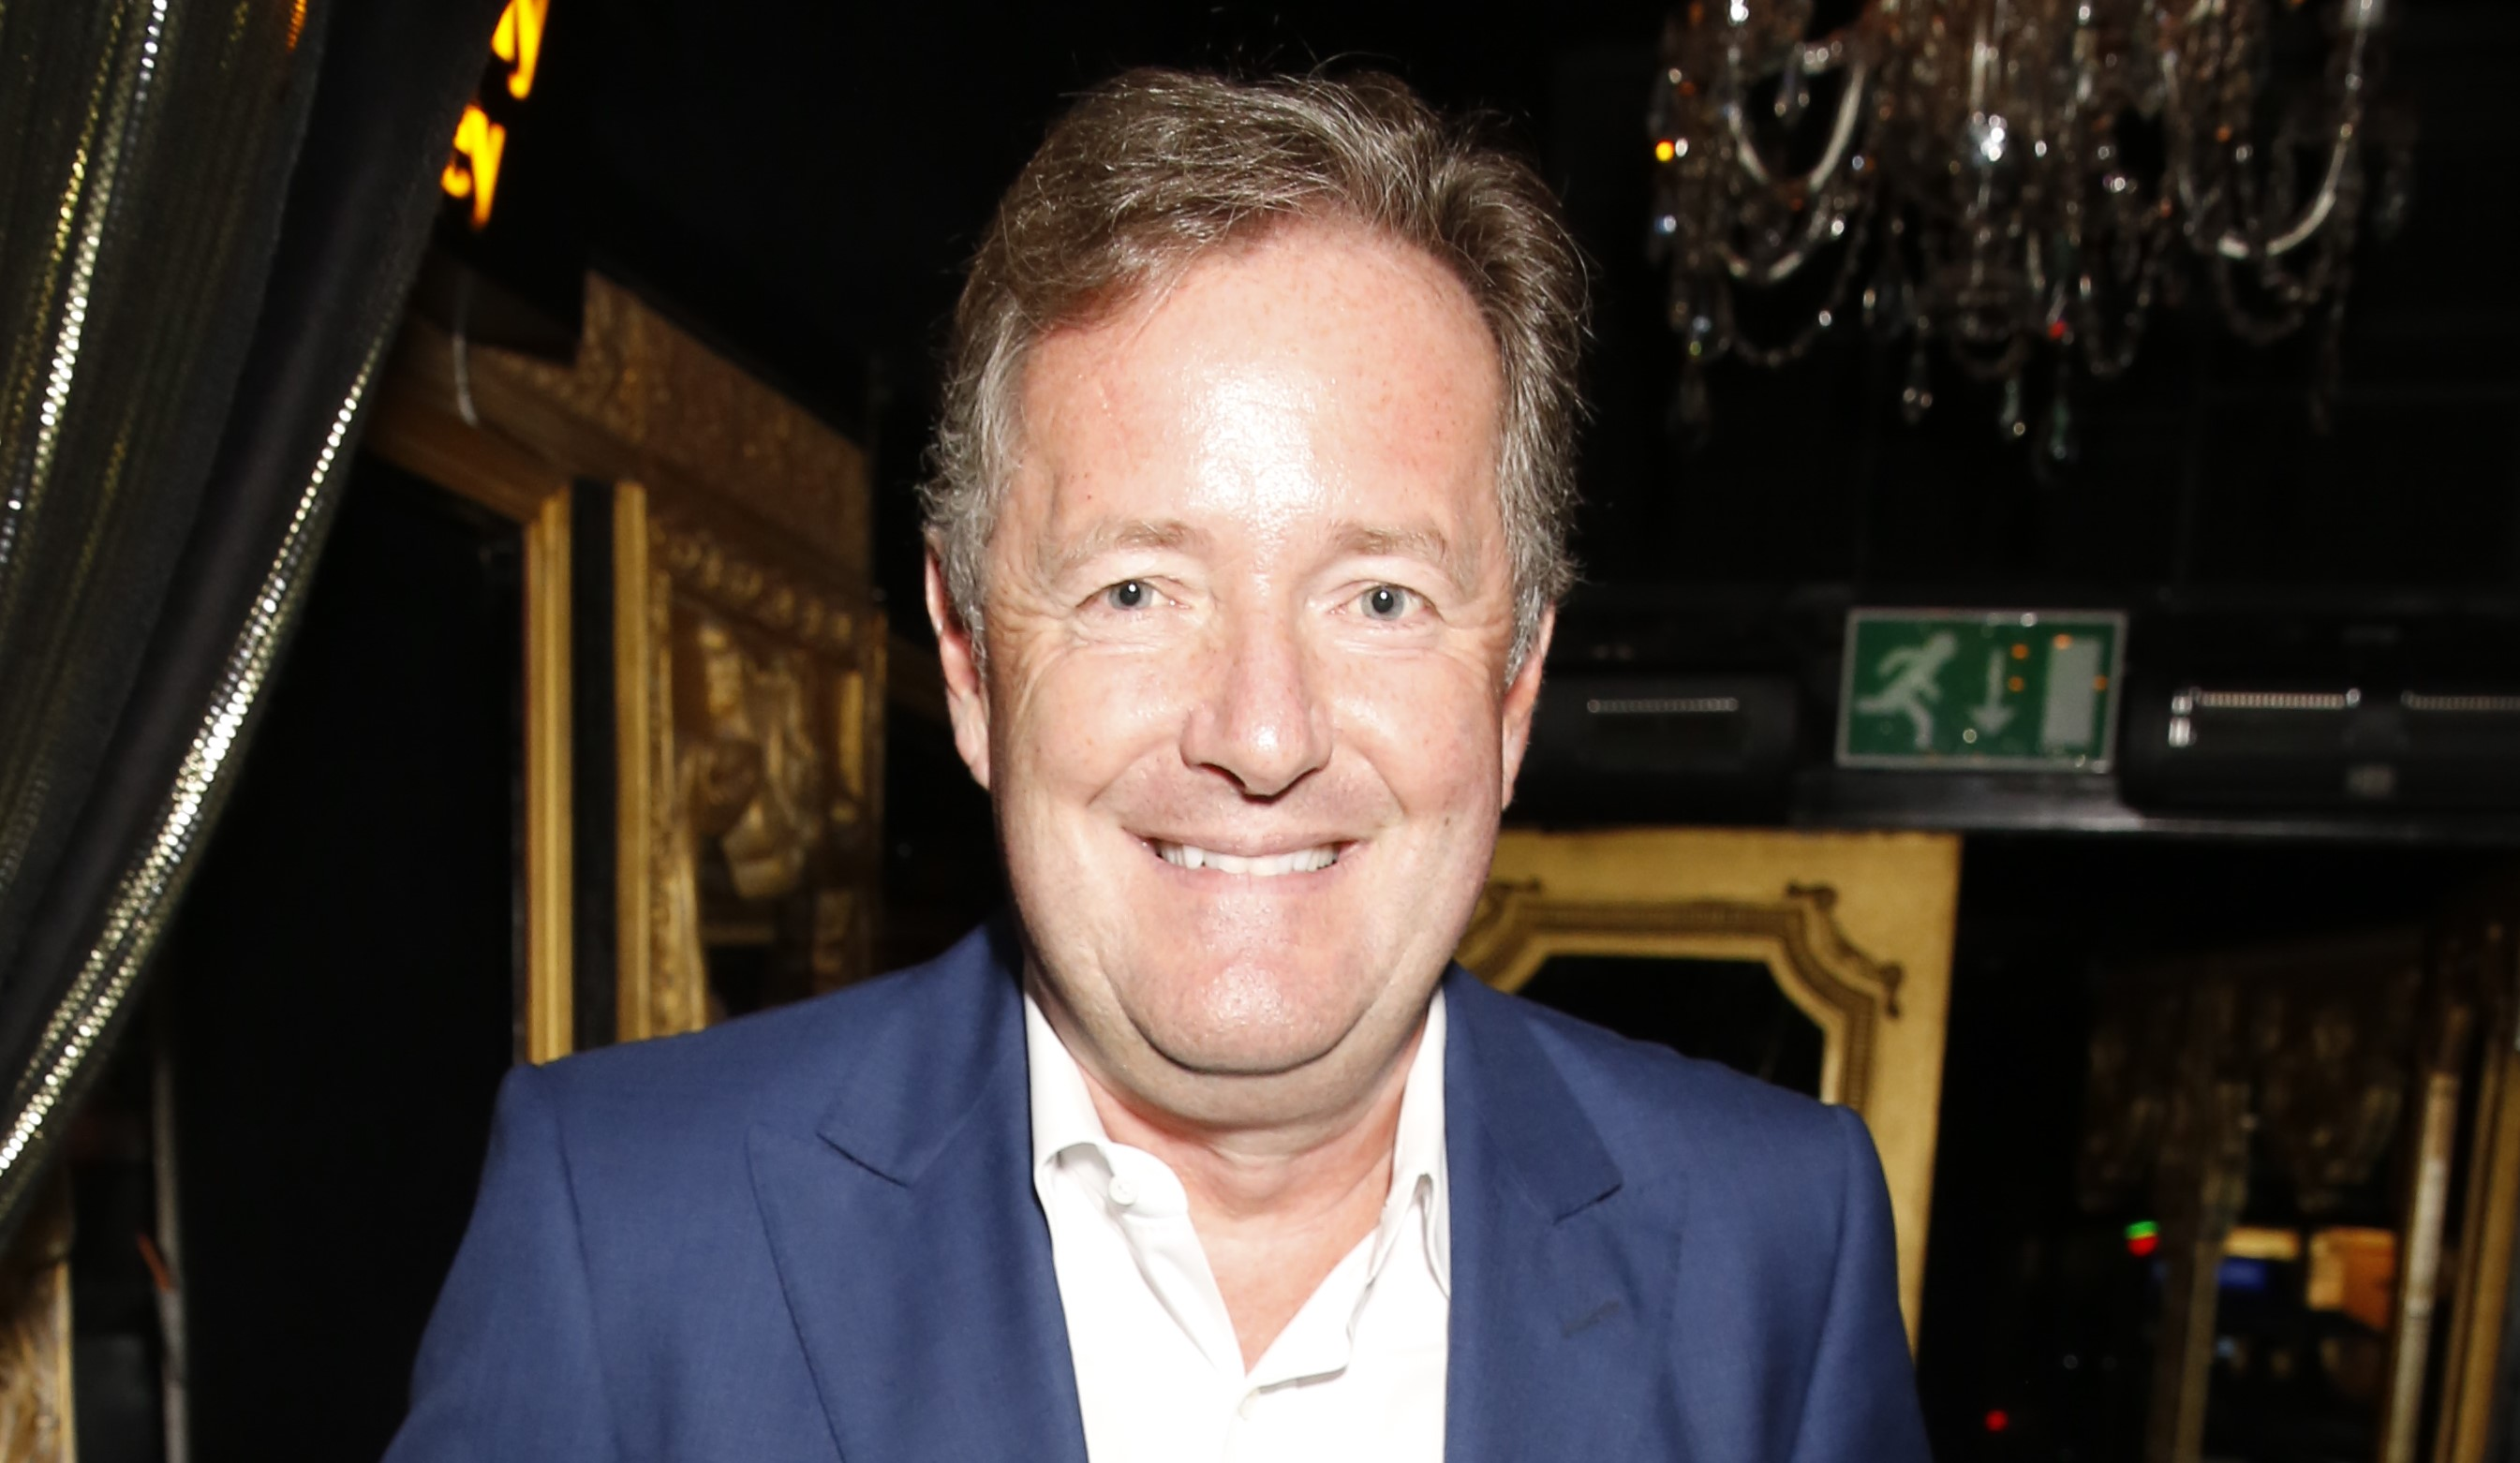 Piers Morgan shares sweet family snaps from his mum's 75th birthday bash